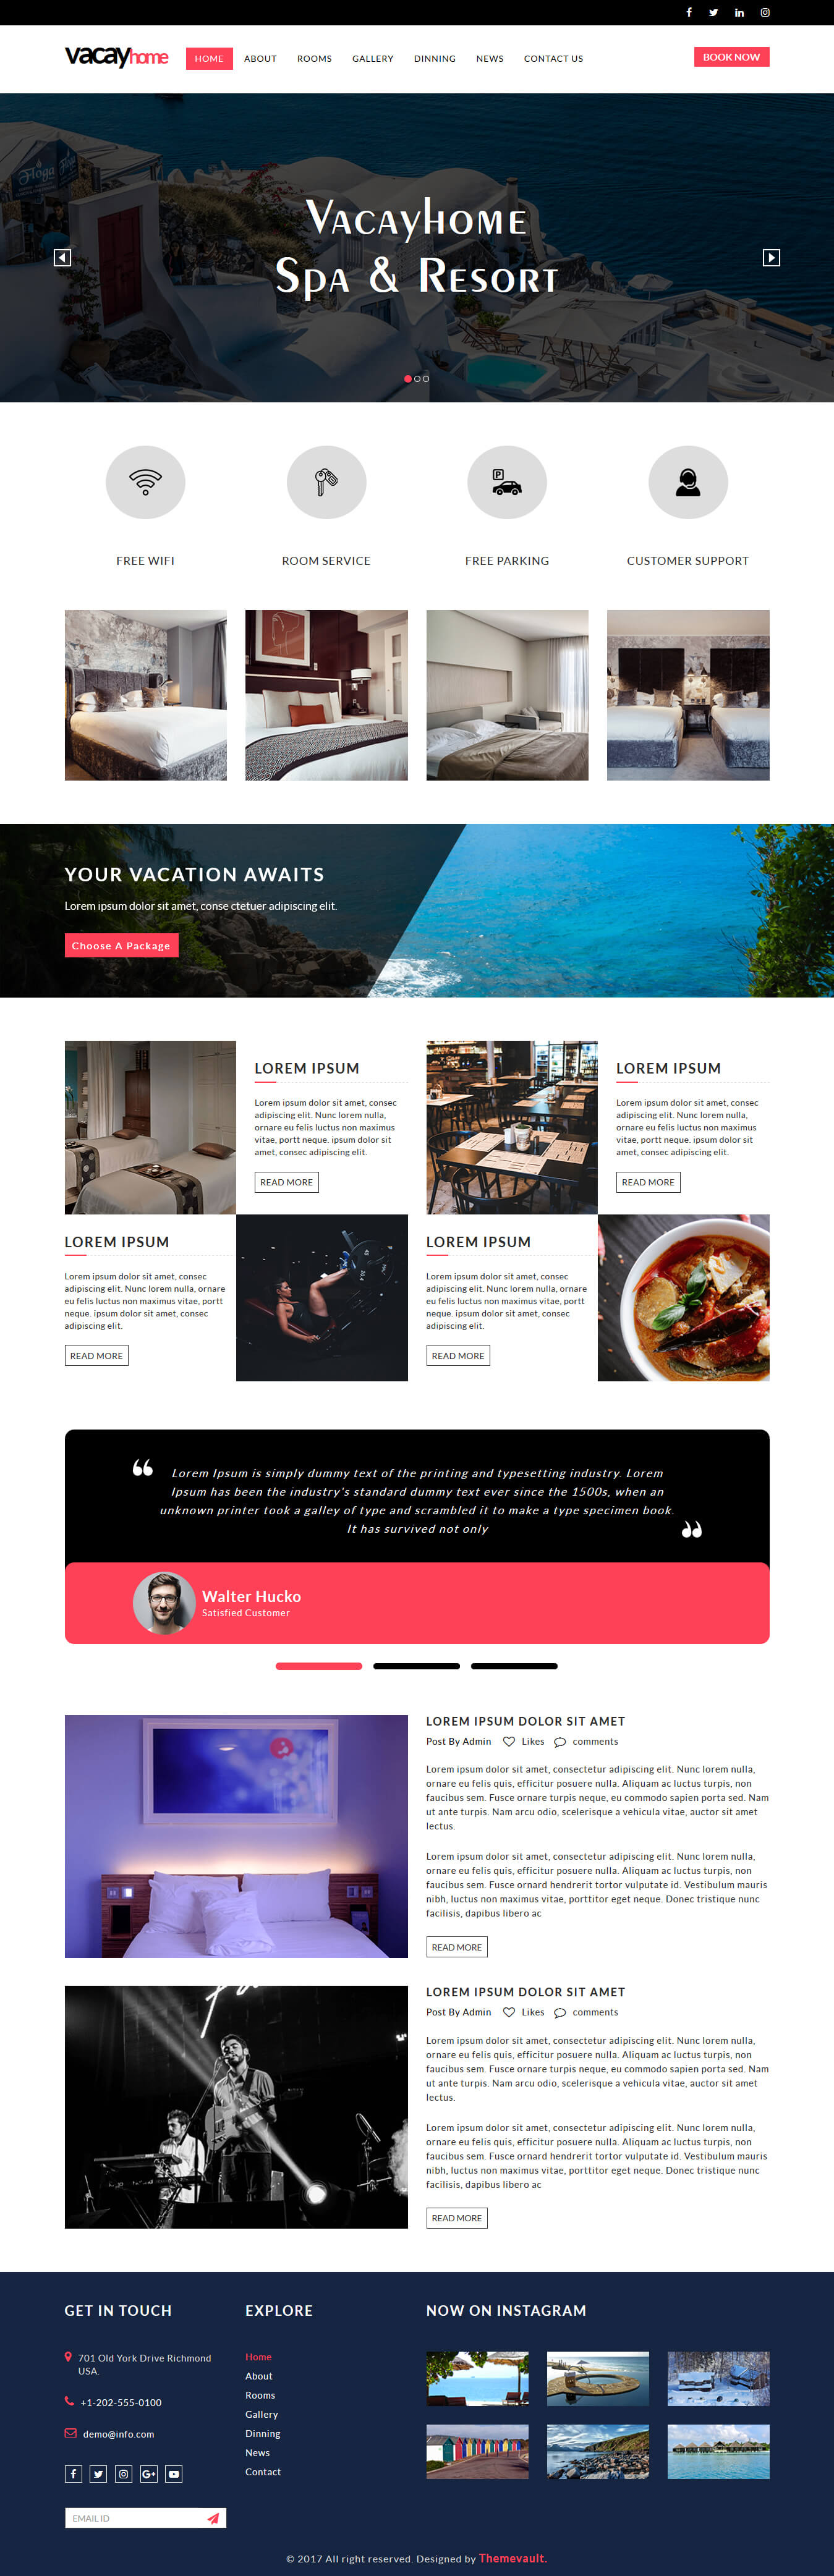 VacayHome - Free Resort And Hotel Website Template | ThemeVault